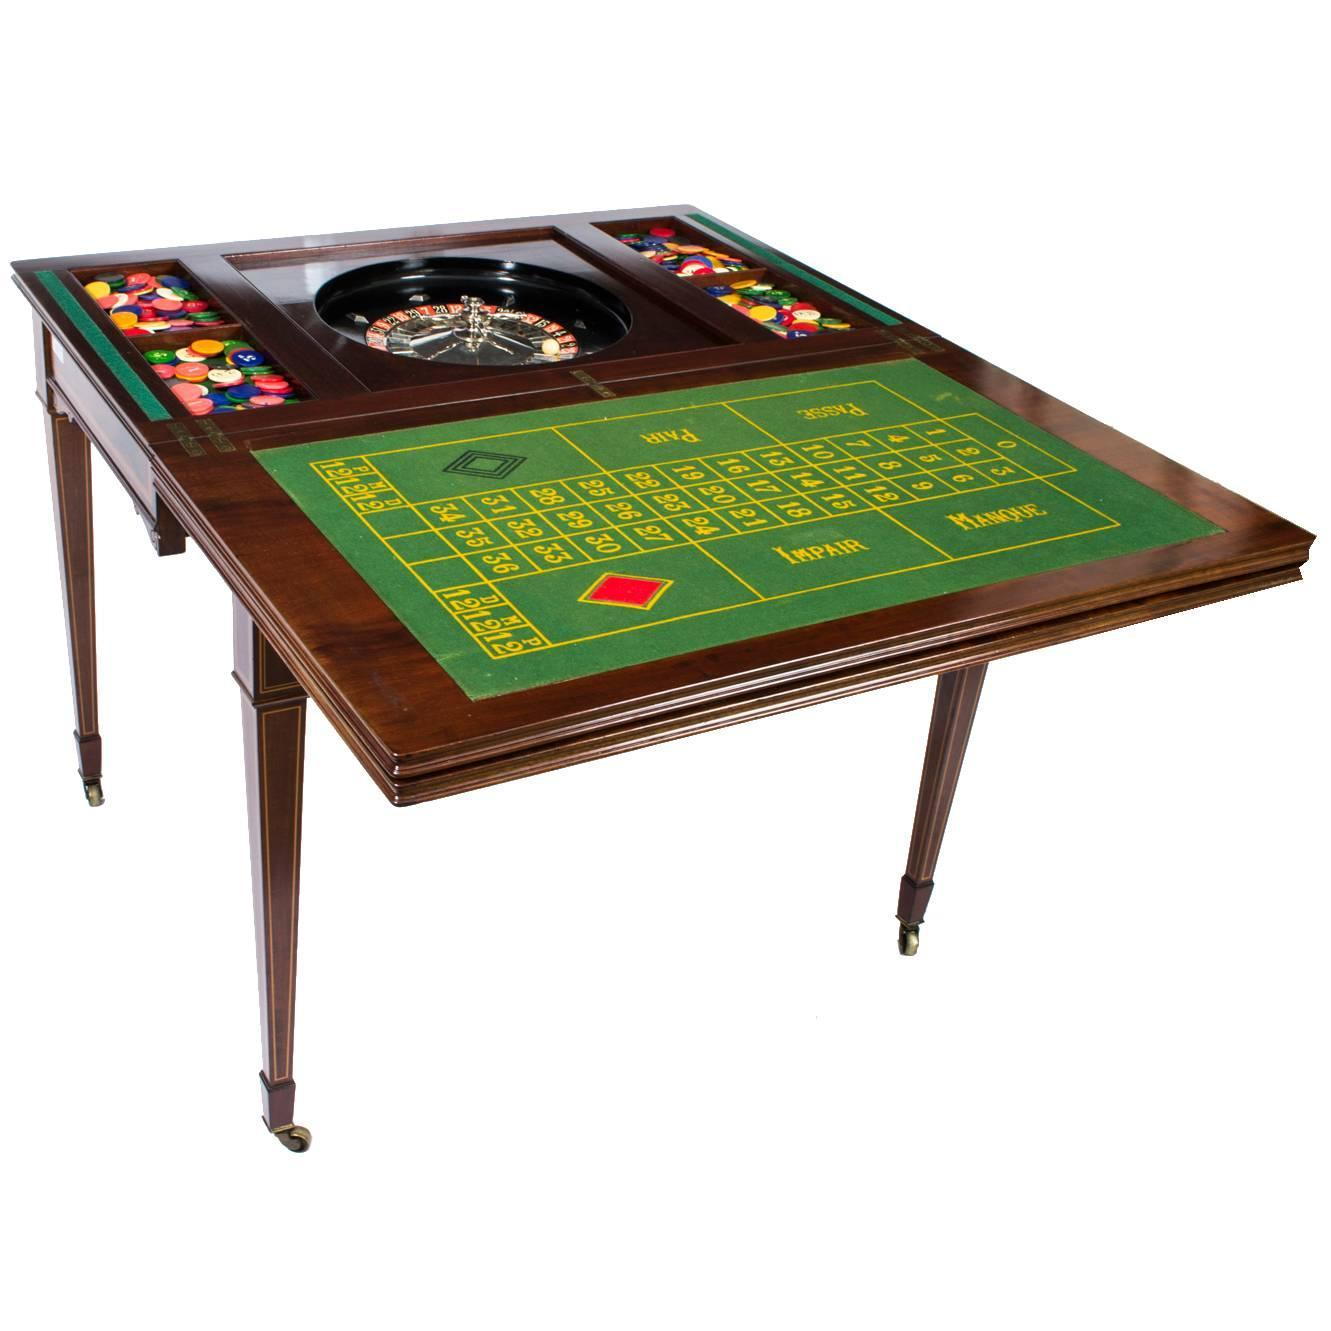 antique edwardian mahogany games roulette table circa. Black Bedroom Furniture Sets. Home Design Ideas